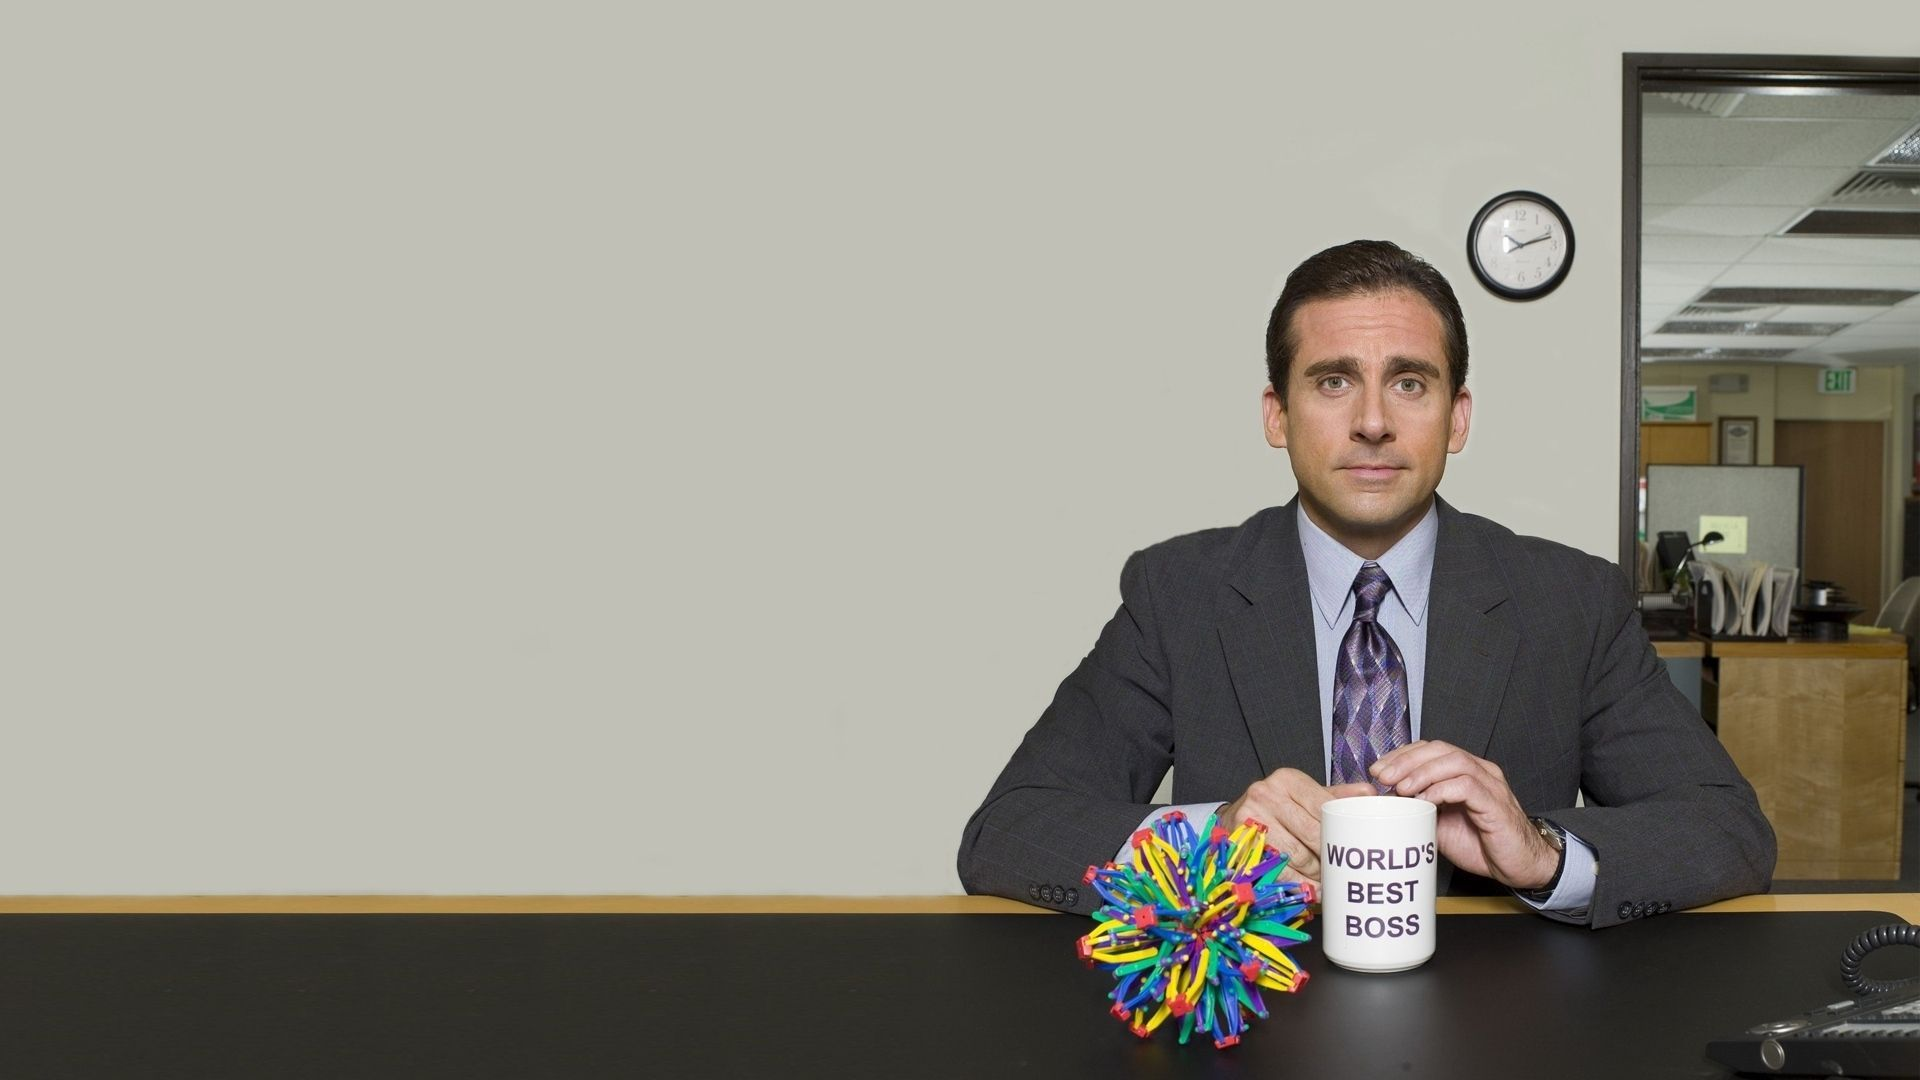 10 Best The Office Wallpaper 1080p Full Hd 1080p For Pc Desktop 1080p Desktop Full Office Wallpaper In 2020 Office Wallpaper Desktop Wallpaper Office Desktop